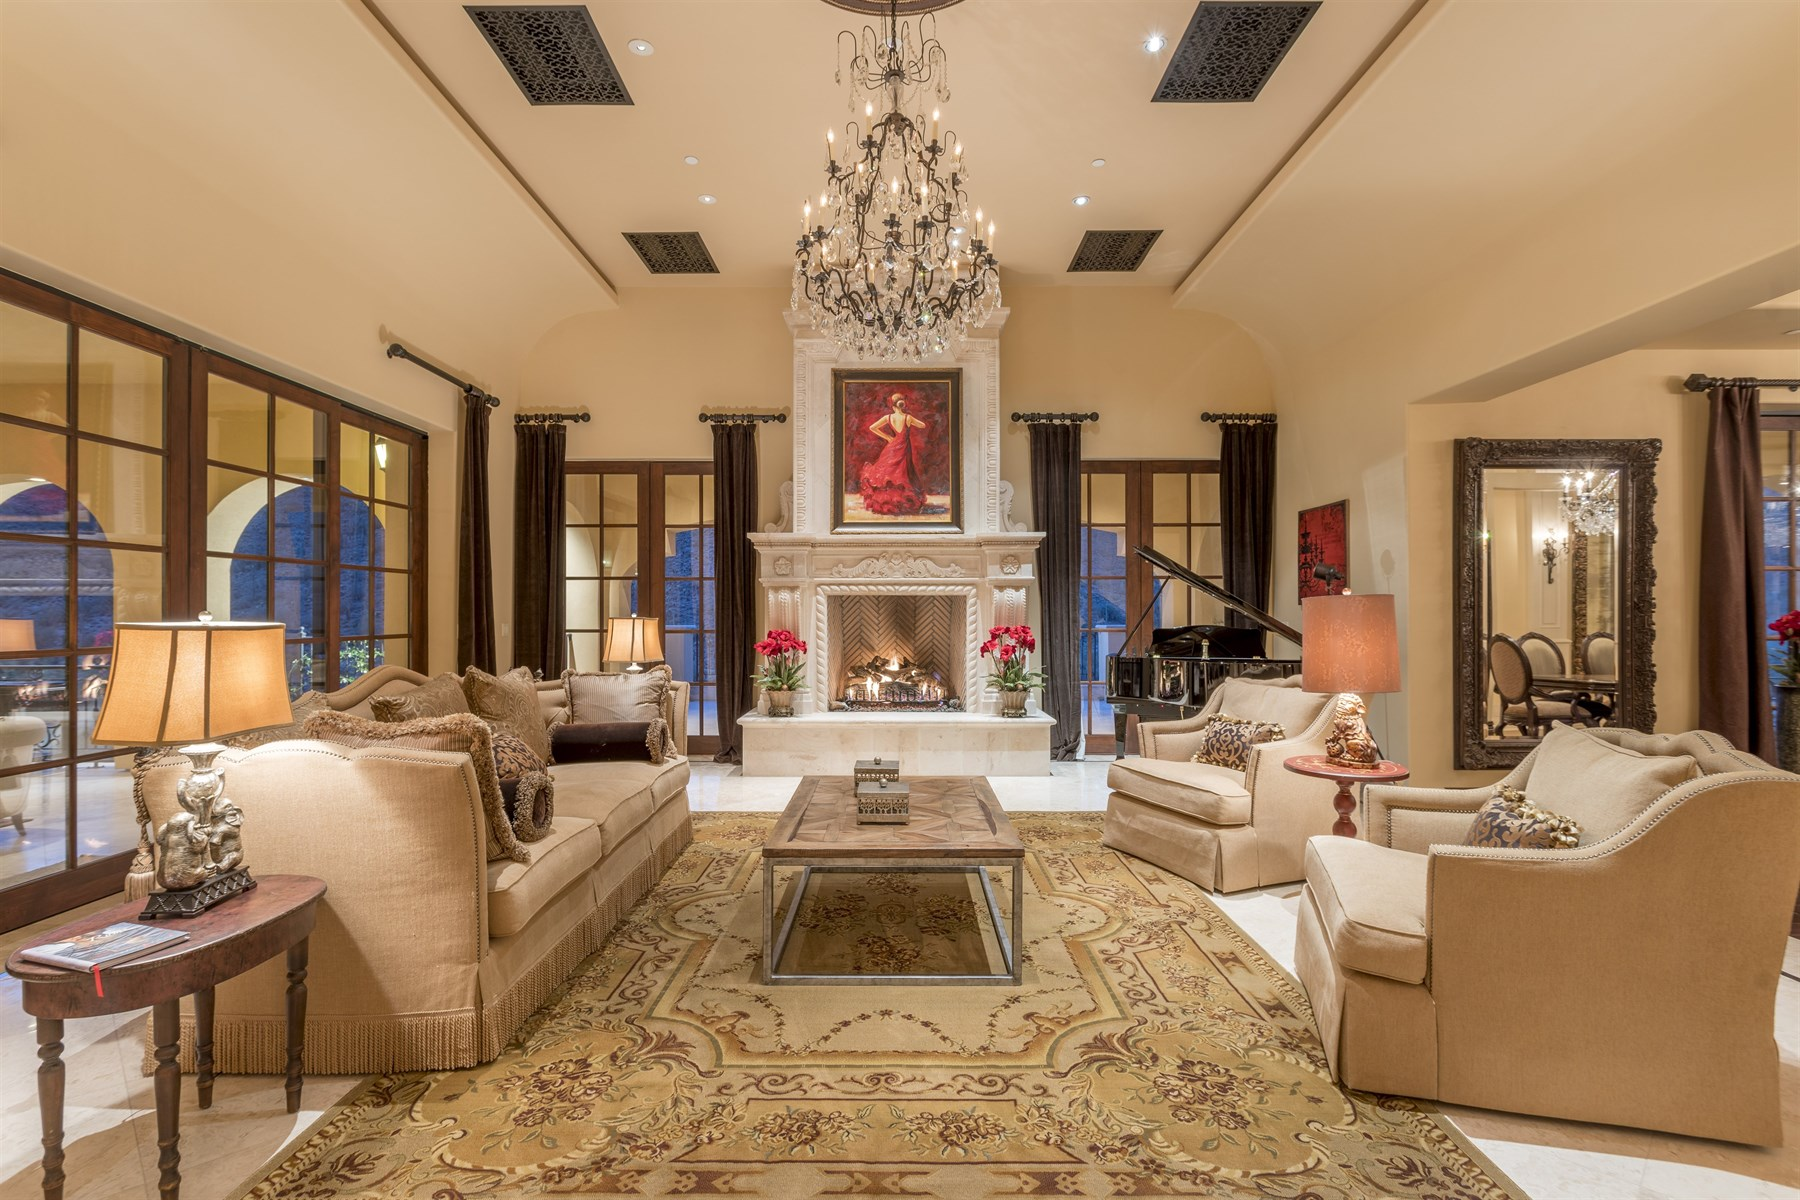 Single Family Home for Sale at Elegant Renovated Estate in Silverleaf 10966 E Grandview Way Scottsdale, Arizona, 85255 United States